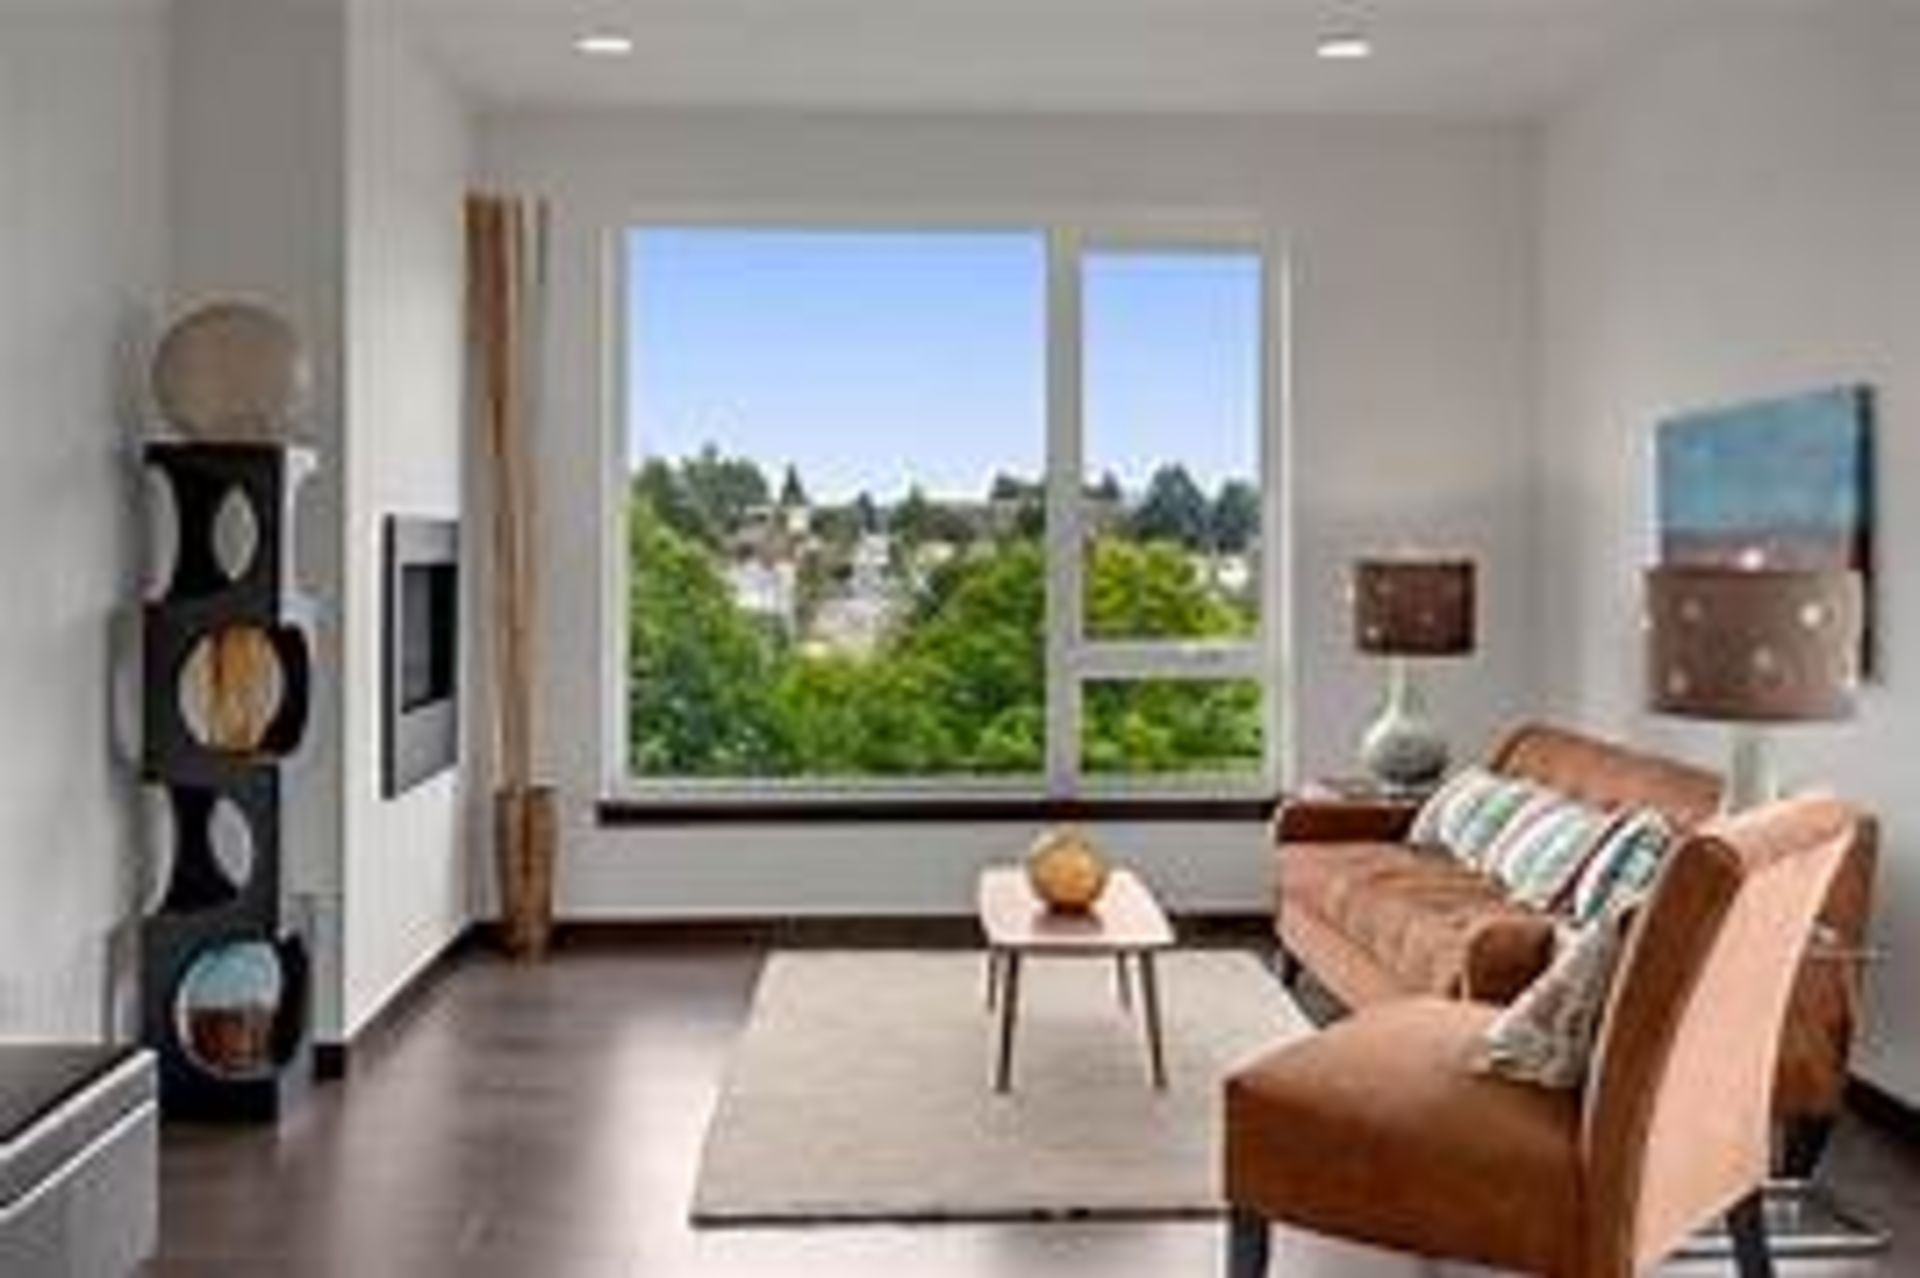 Why Realtors Suggest Staging a Home for Sale